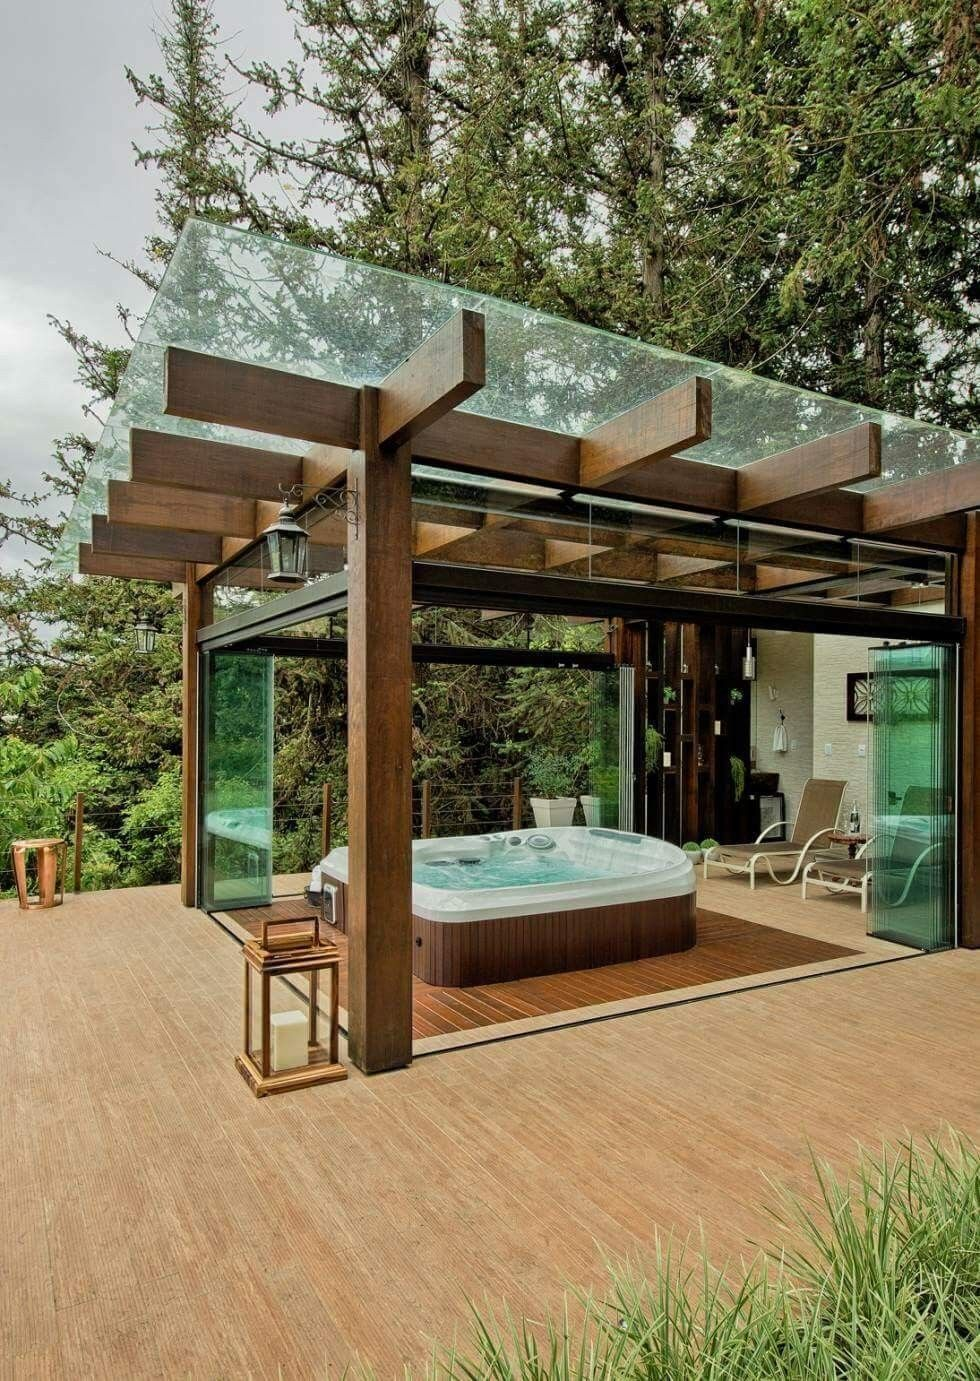 Pergola Covered With Glass Or Acrylic Bifold Glass Doors To Enclose